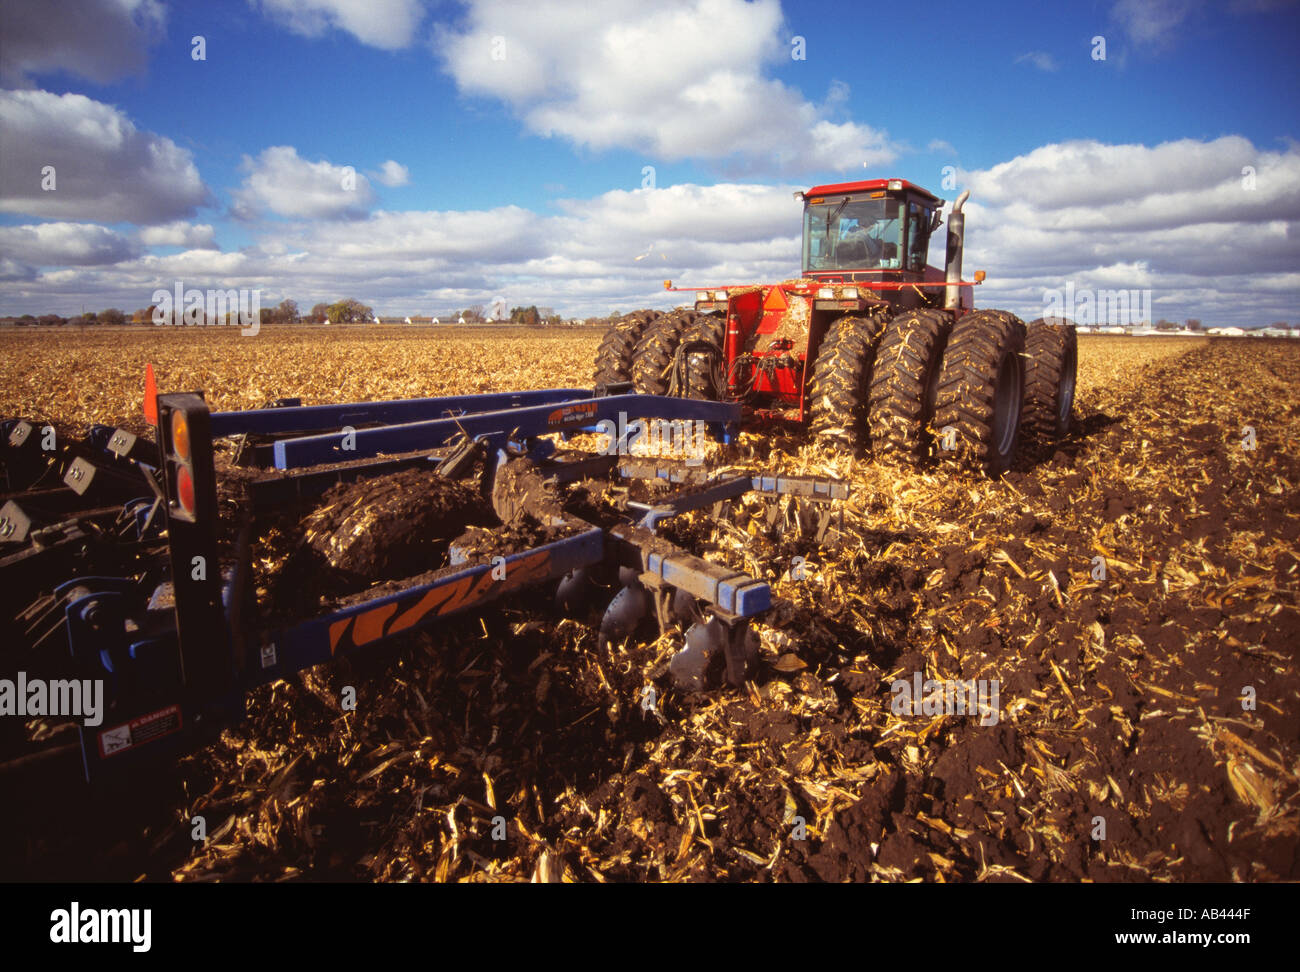 Agriculture - 4WD tractor chisel plowing a field of corn stubble in Autumn in preparation for the Winter dormant period / Wiscon - Stock Image